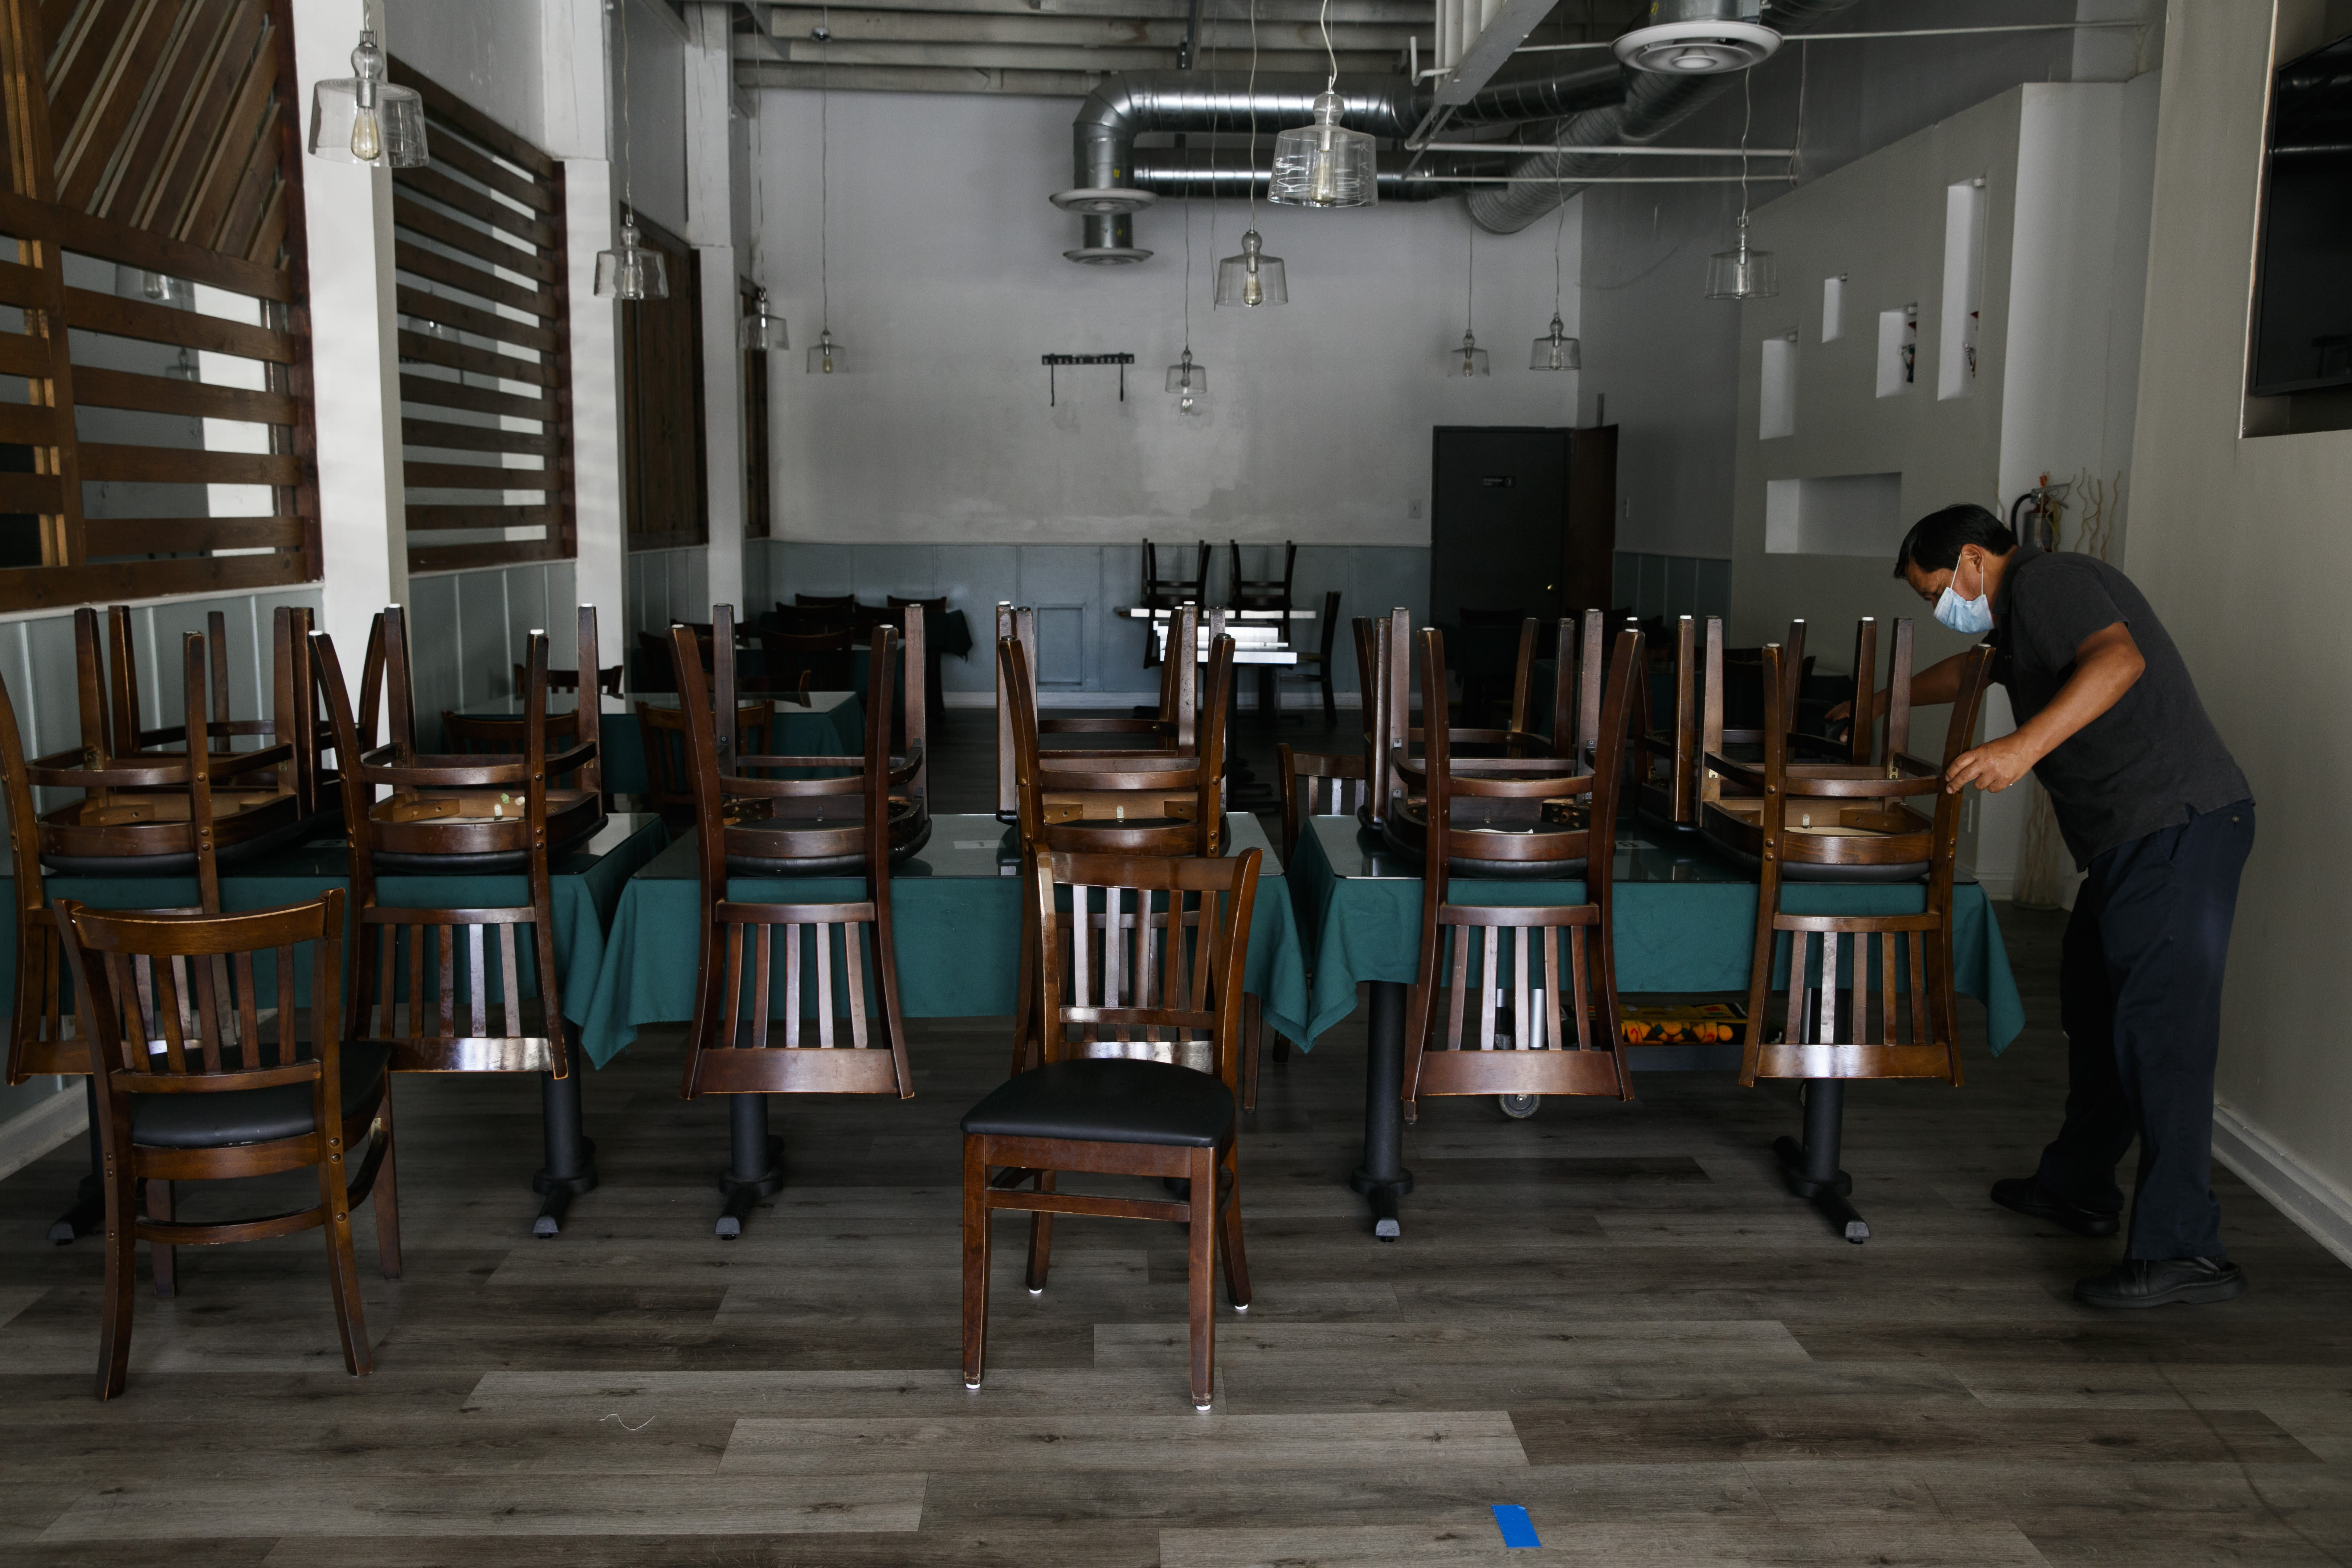 Fabian Nahui, the owner of a Peruvian restaurant, arranges chairs Monday, July 6, 2020, in Los Angeles. The coronavirus is blamed for over a half-million deaths worldwide, including more than 130,000 in the U.S., according to the tally kept by Johns Hopkins University. (AP Photo/Jae C. Hong)